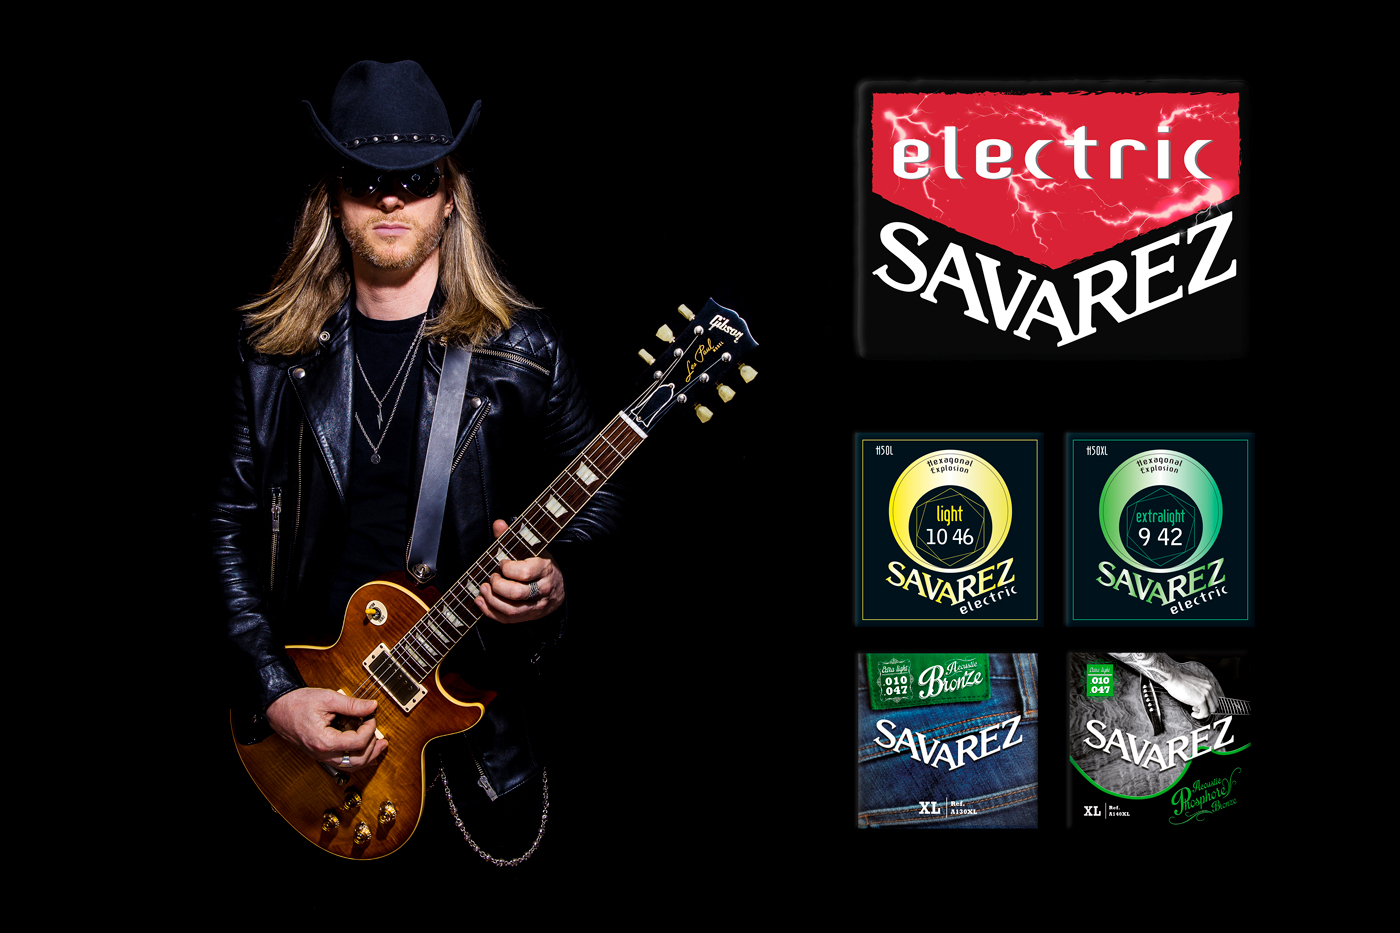 MAT NINAT Savarez strings endorsement